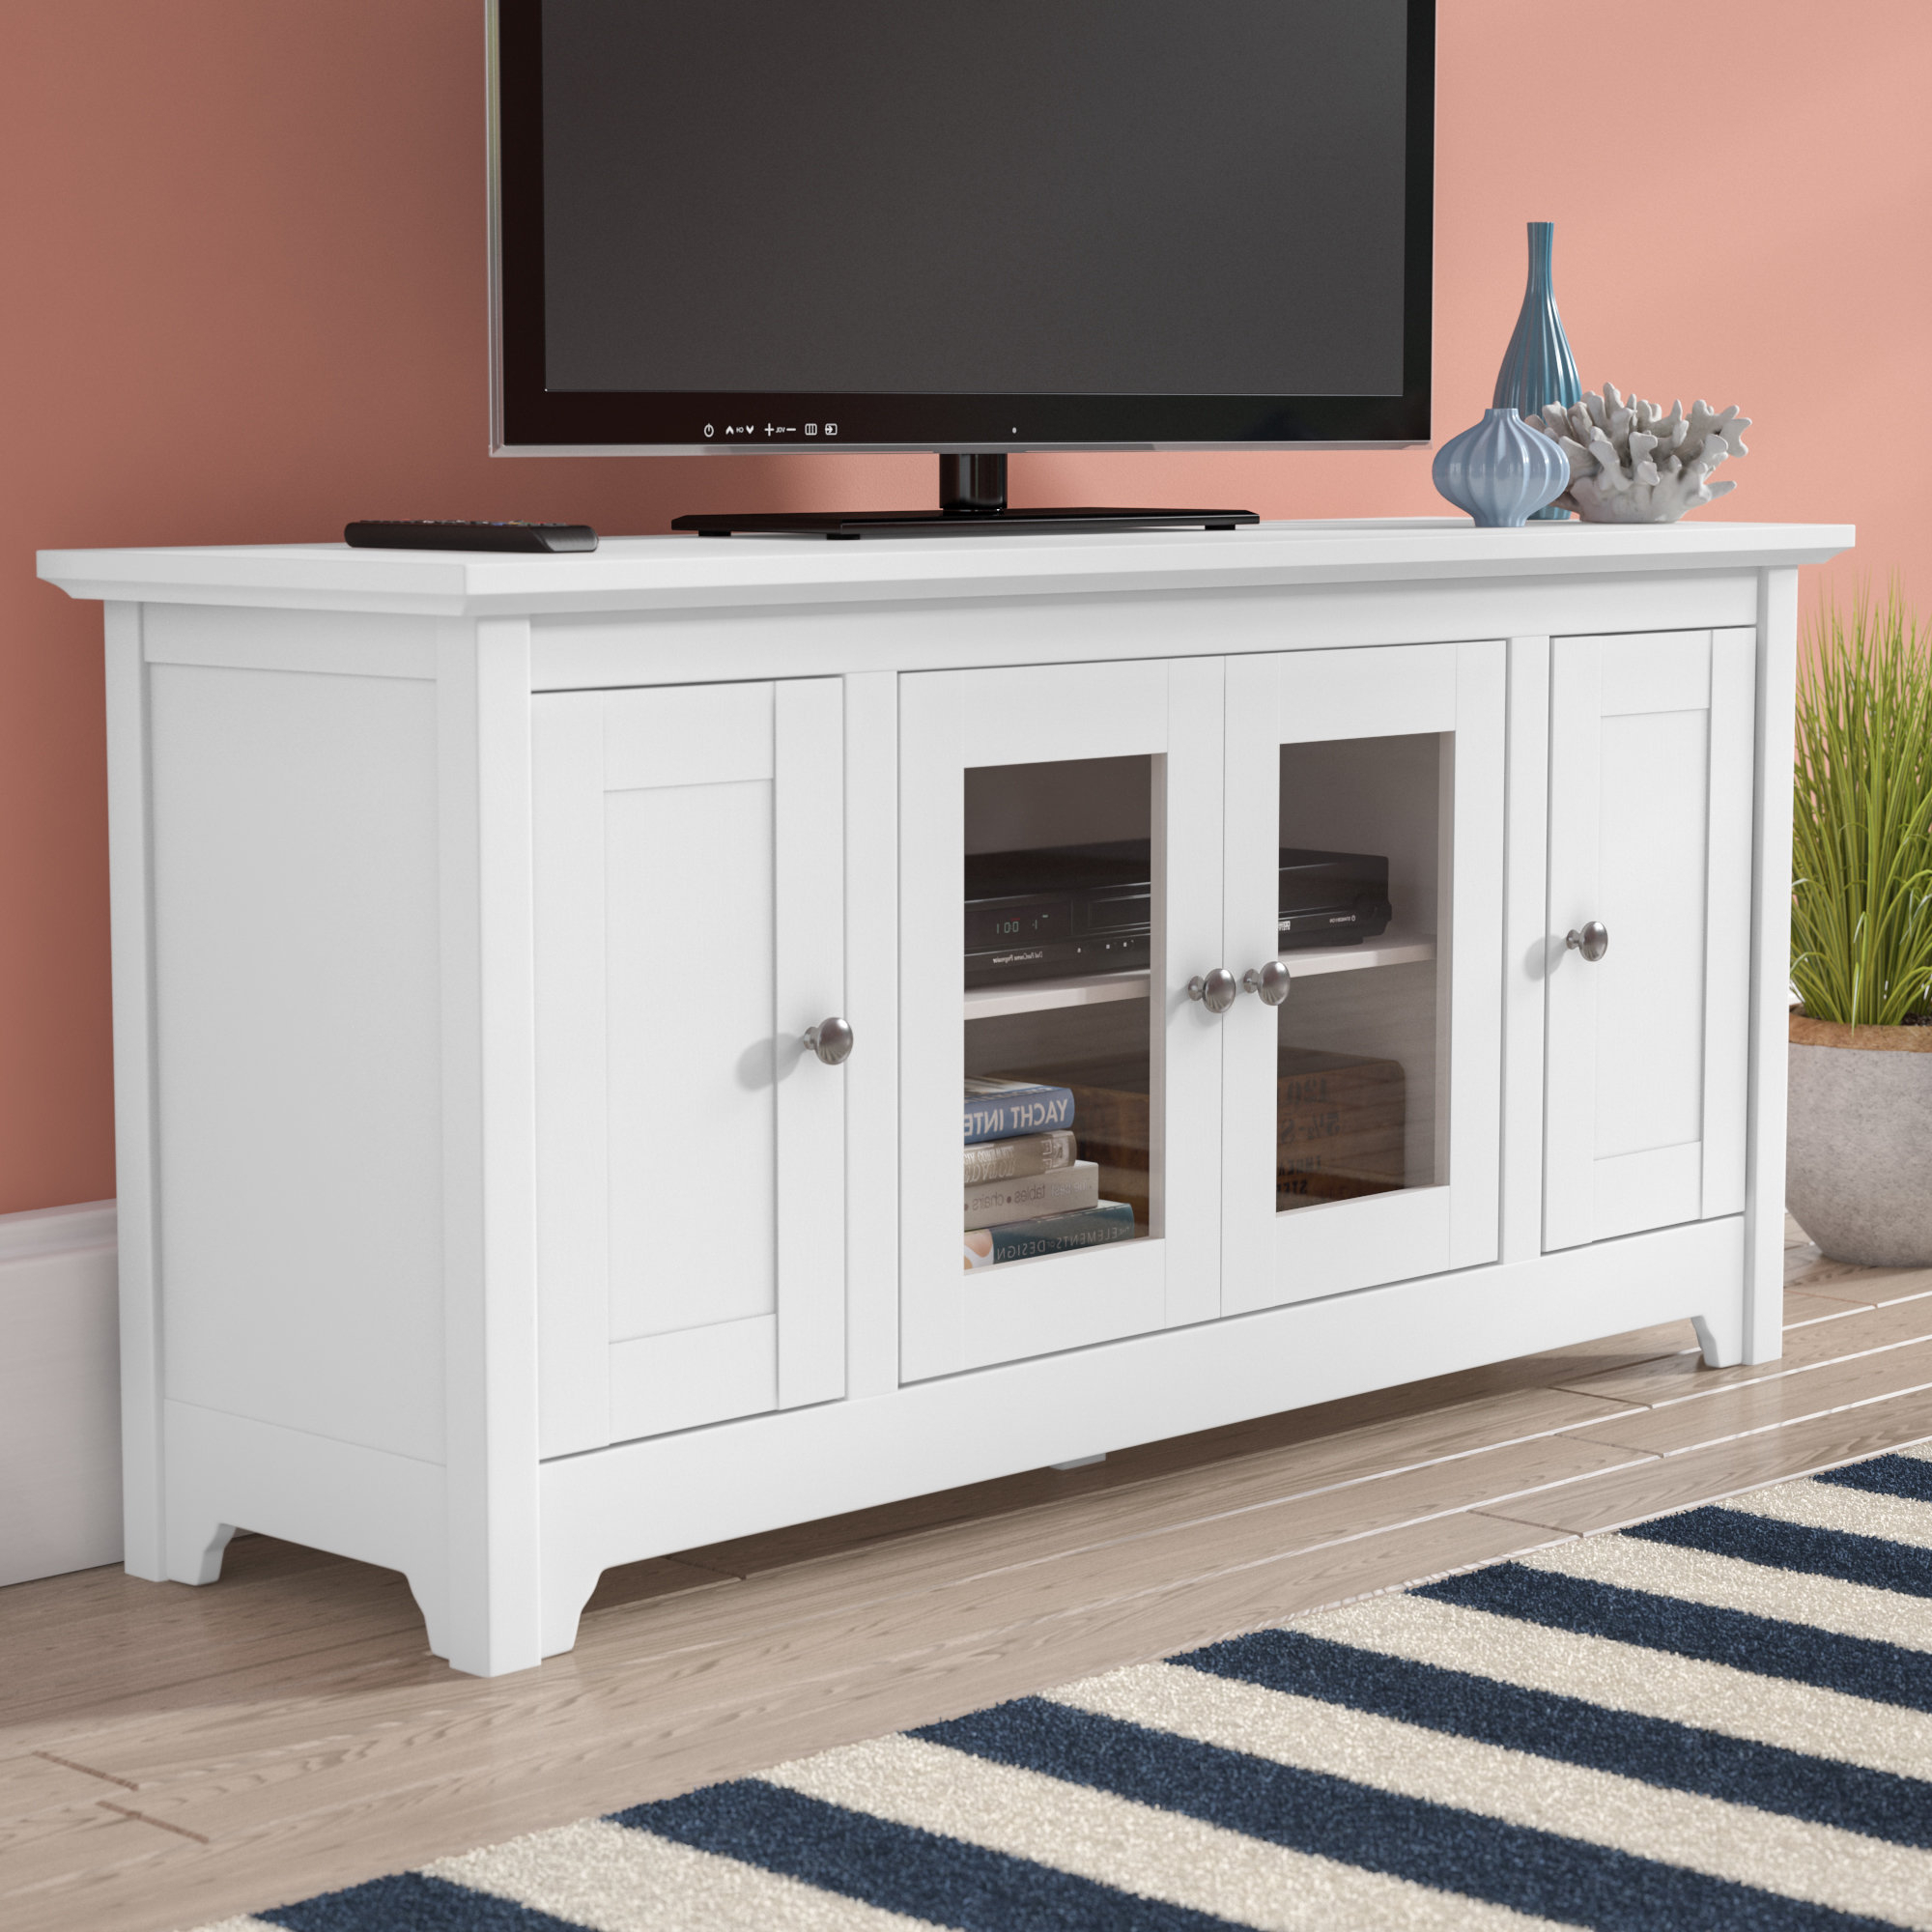 72 Inch Tv Stand | Wayfair For Kenzie 60 Inch Open Display Tv Stands (View 4 of 20)